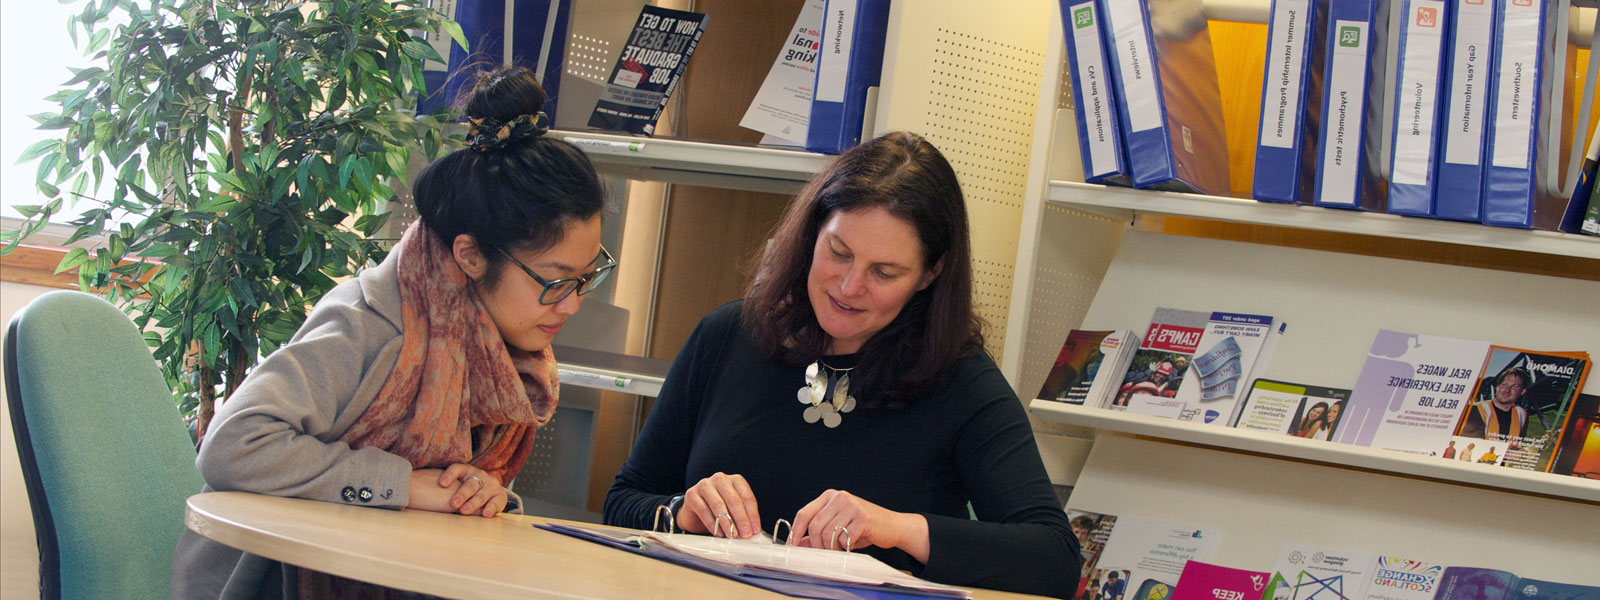 a careers adviser sits with a student looking at documents on the desk